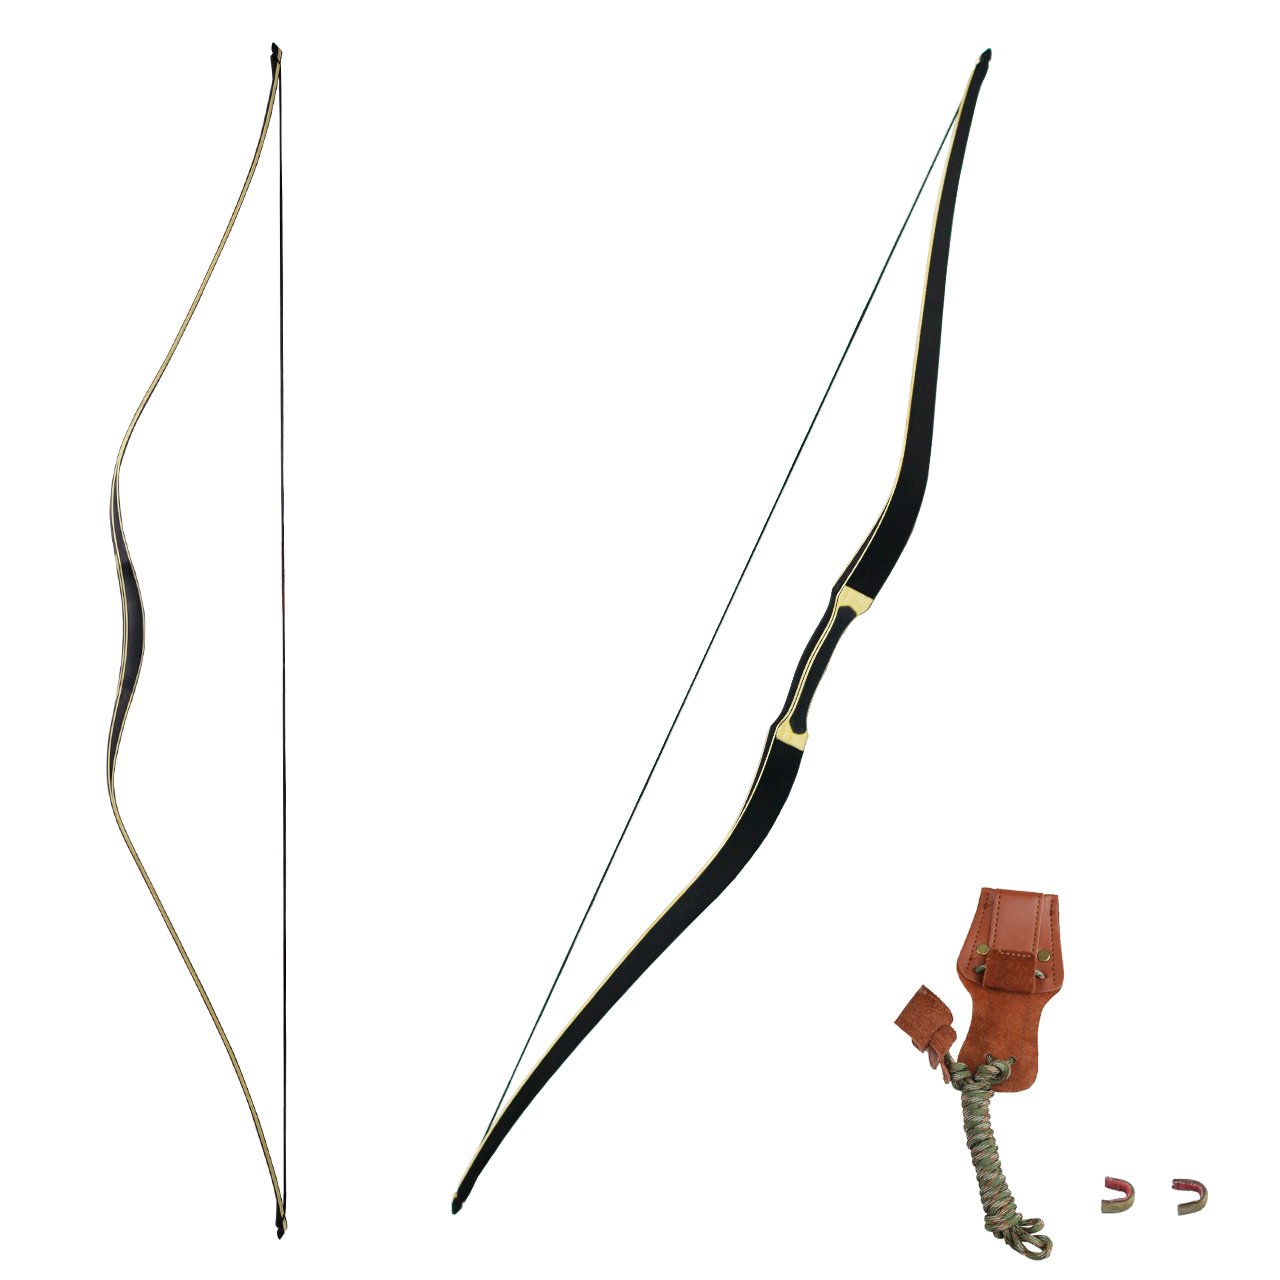 SinoArt Longbow 58'' One Piece Horsebow with Stringer Tool String Nocks (30Lbs) by SinoArt